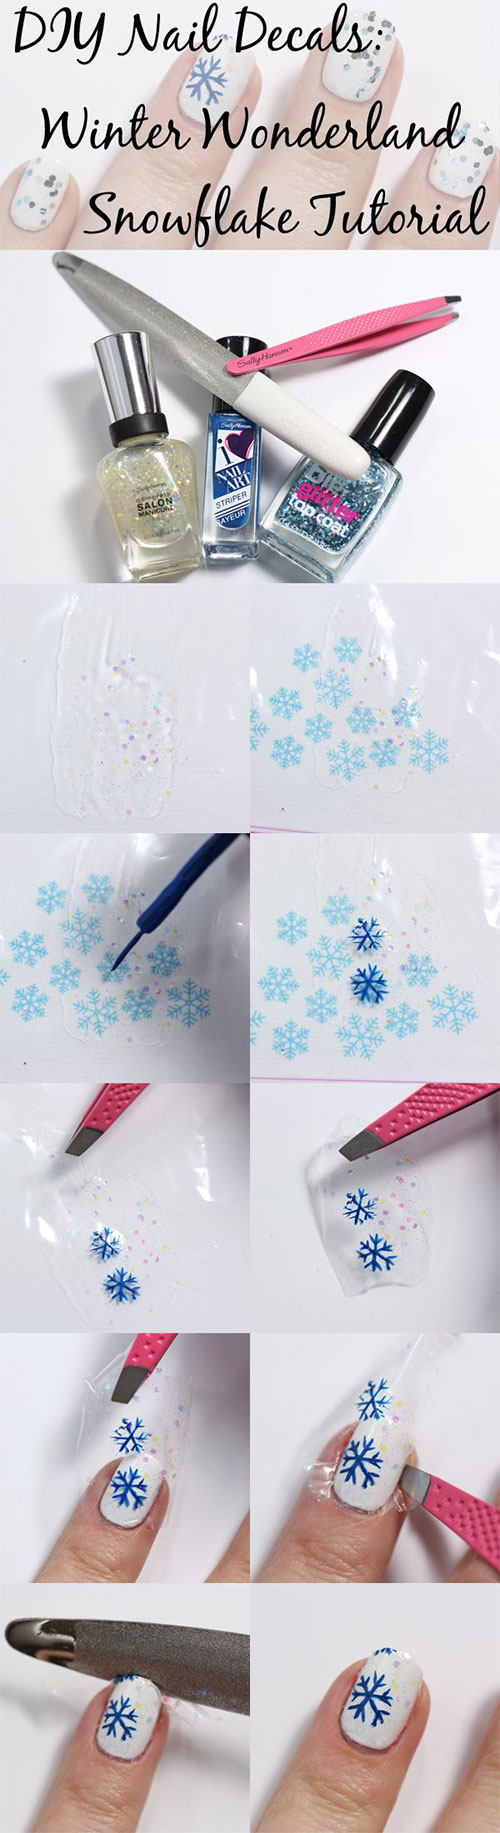 15-Best-Step-By-Step-Winter-Nail-Art-Tutorials-For-Beginners-Learners-2015-13